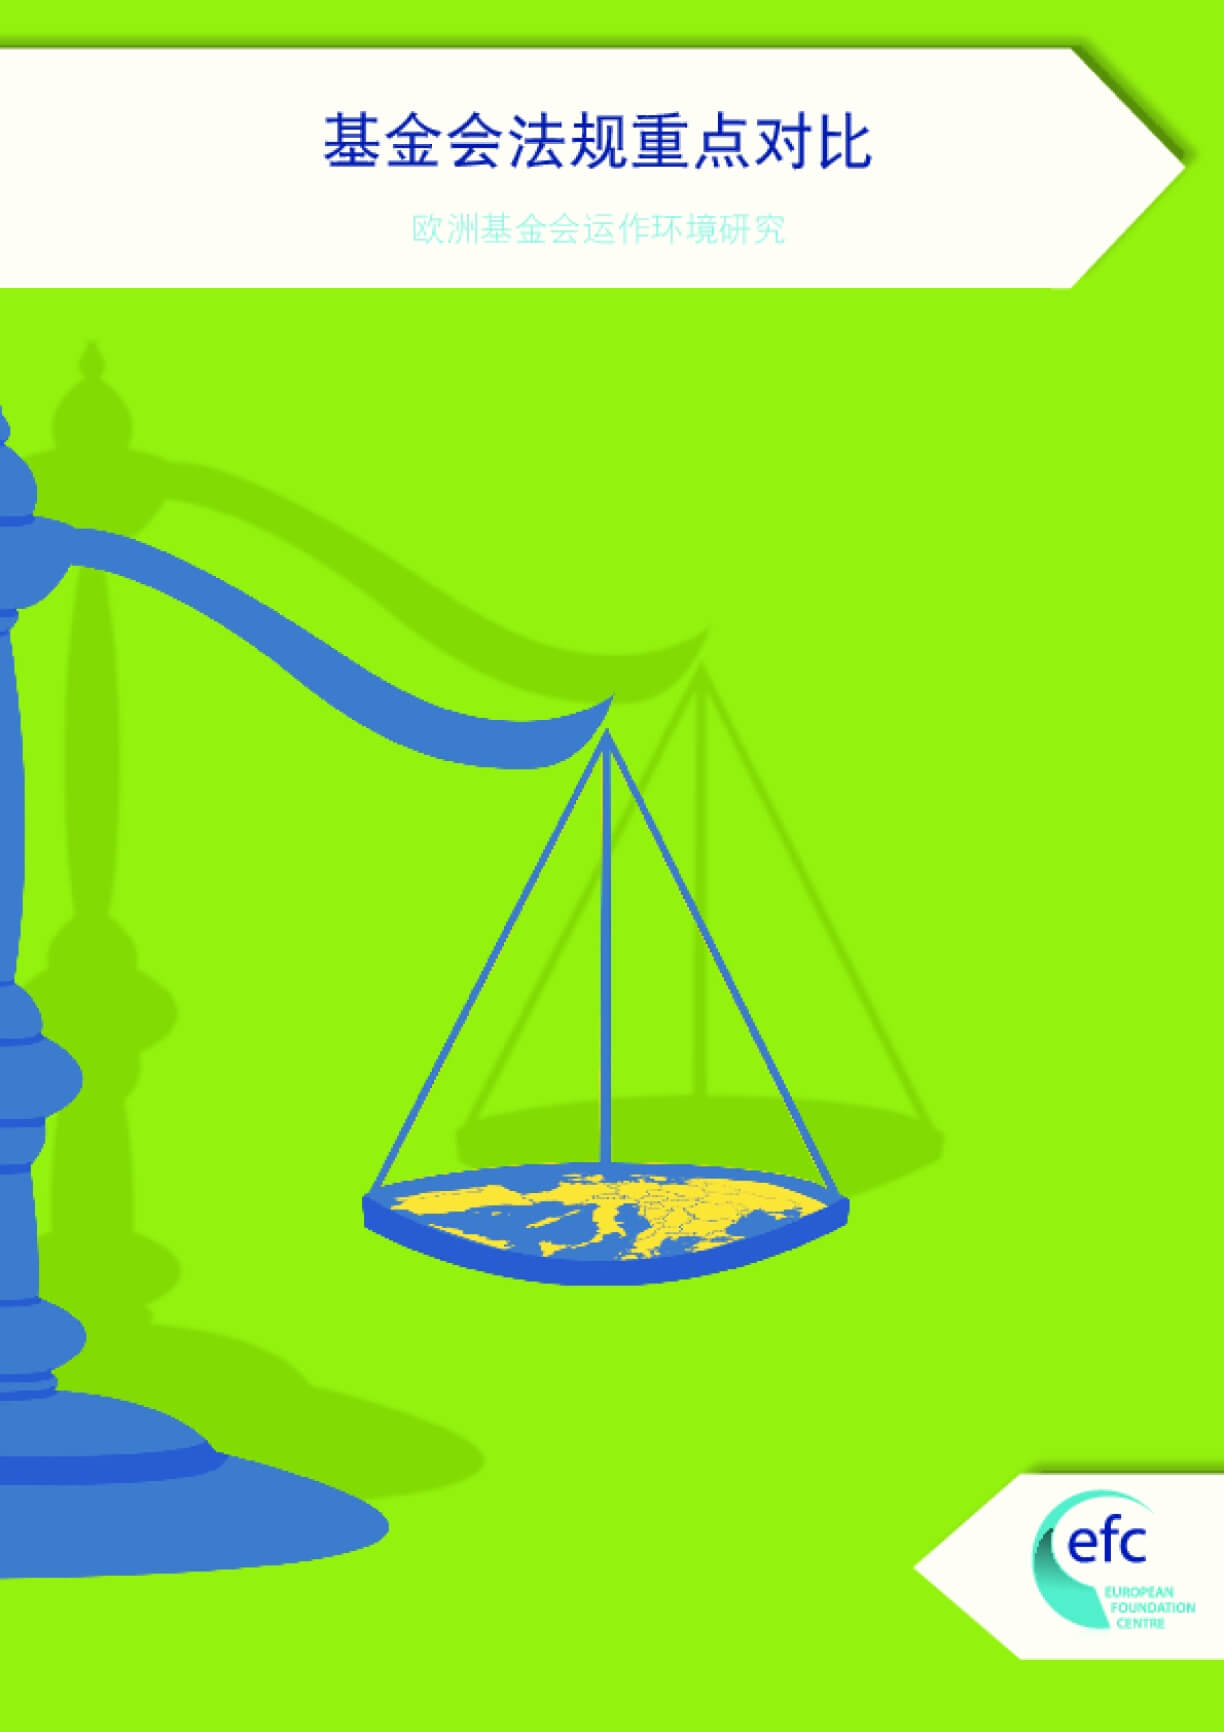 Comparative Highlights of Foundation Laws: The Operating Environment for Foundations in Europe 2015 (Chinese Translation)